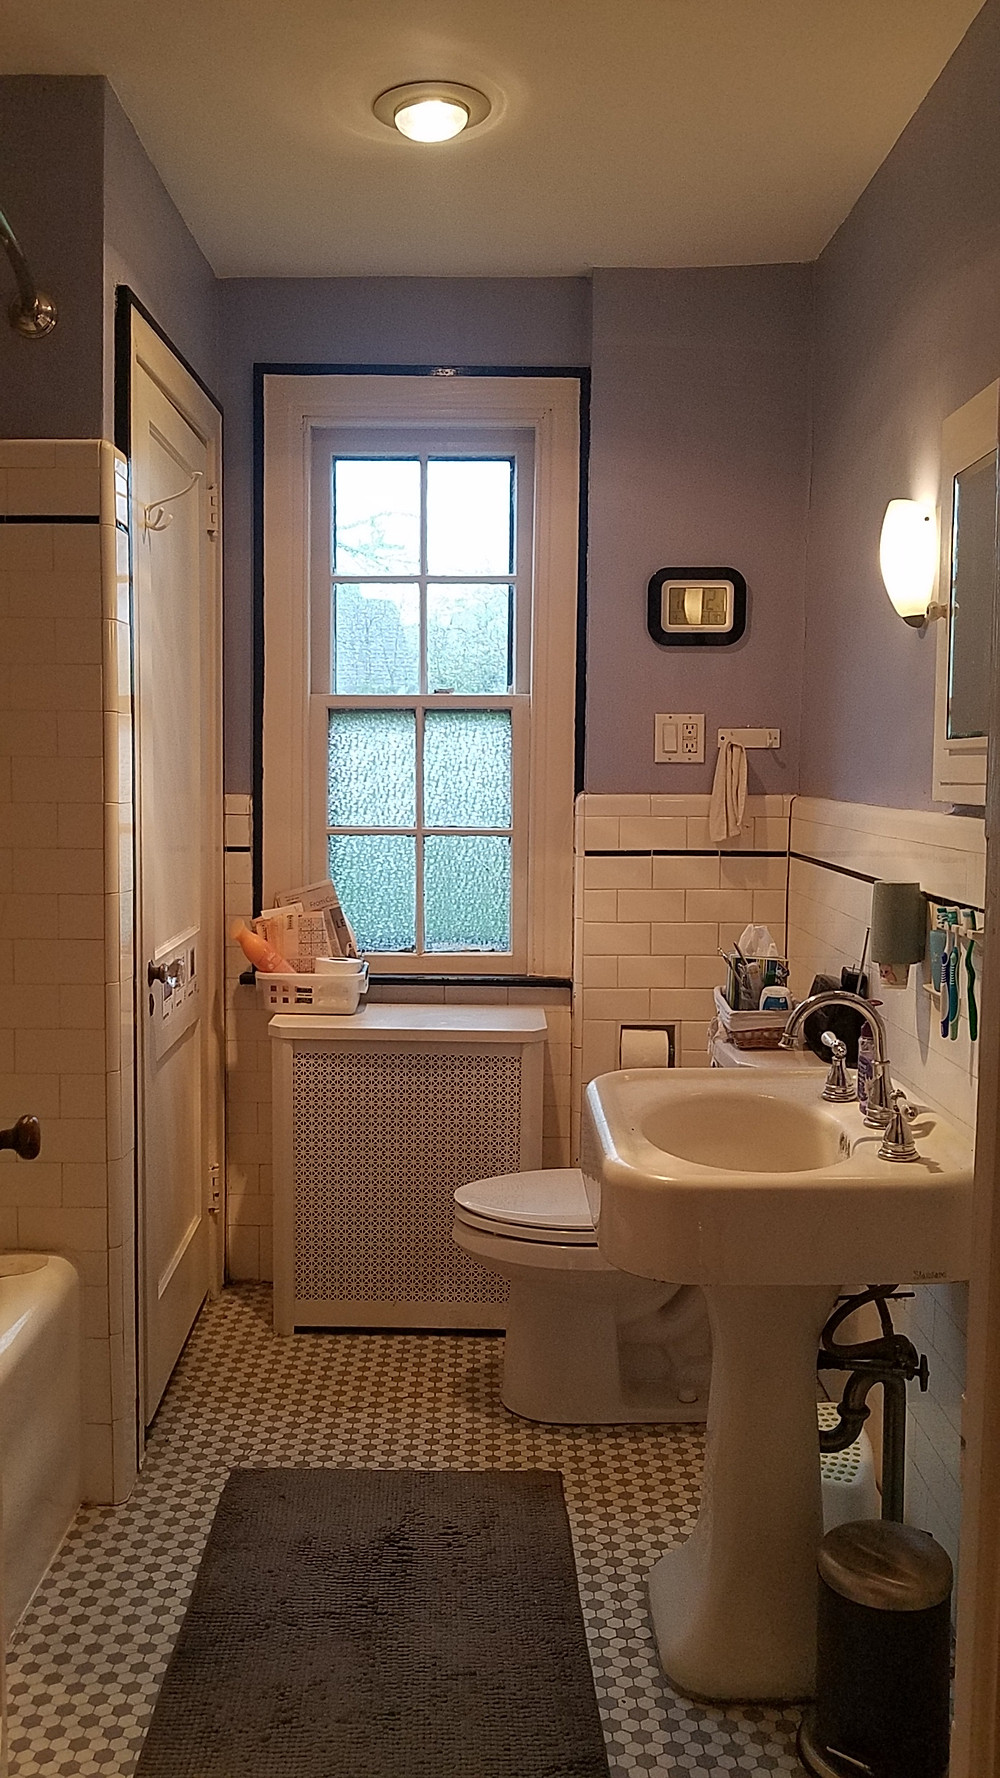 David W. Feldman's bathroom features subway tiles, a pedestal sink and a built-in bathtub, all changes that were made after the 1918 pandemic in an effort to minimize germs. (David W. Feldman)